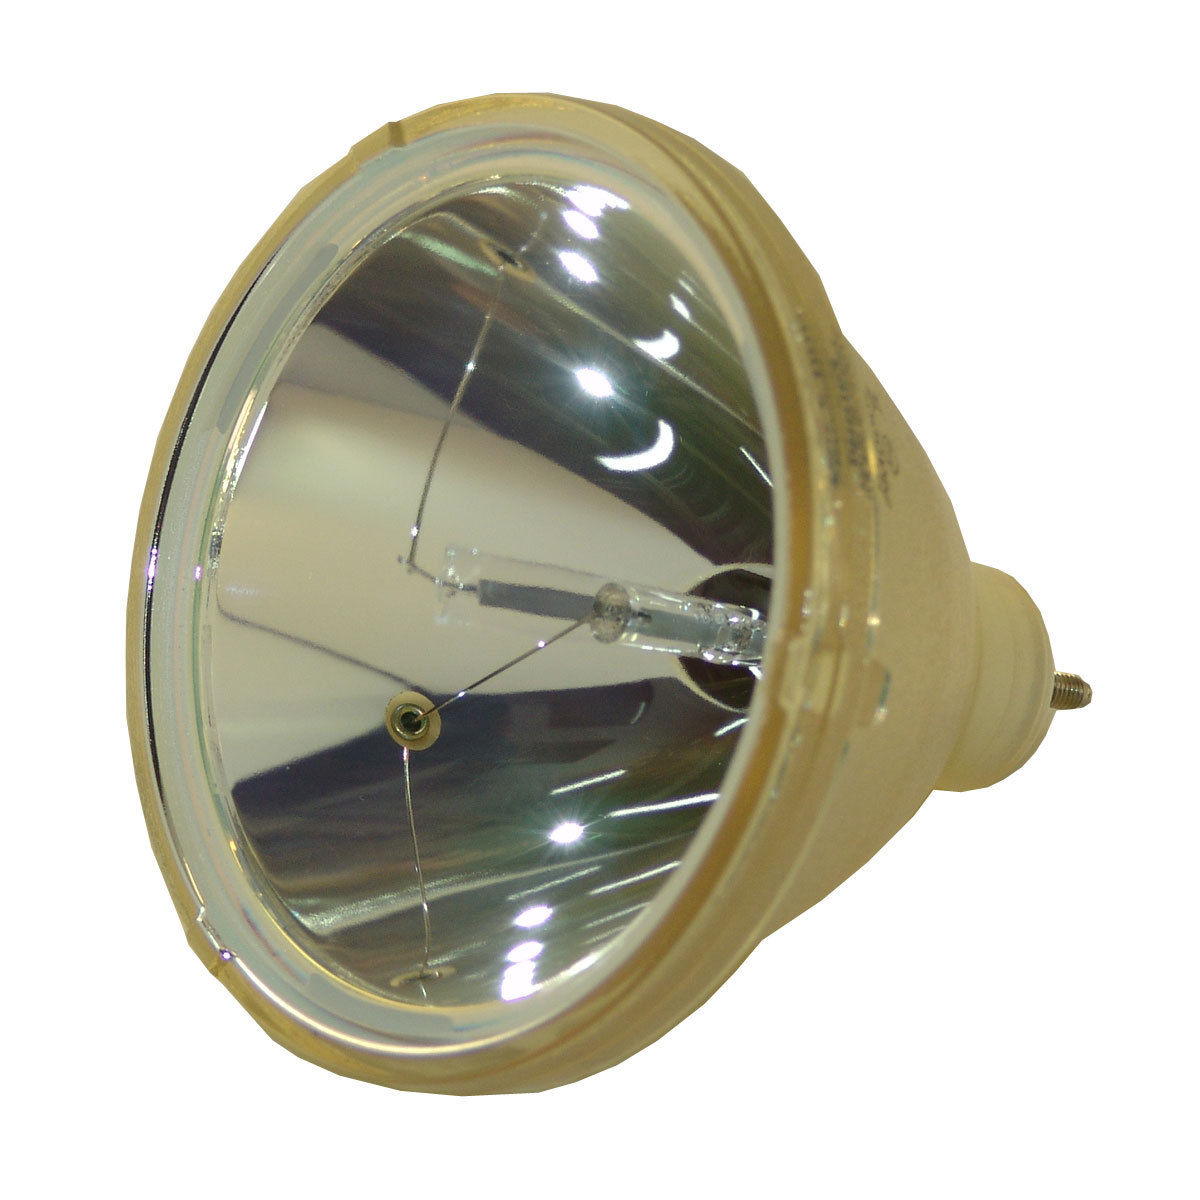 Compatible Bare Bulb LV-LP06 4642A001 for Canon LV-7525 LV-7525E LV-7535 LV-7535U Projector Lamp Bulb without housing compatible bare bulb lv lp30 2481b001 for canon lv 7365 projector lamp bulb without housing